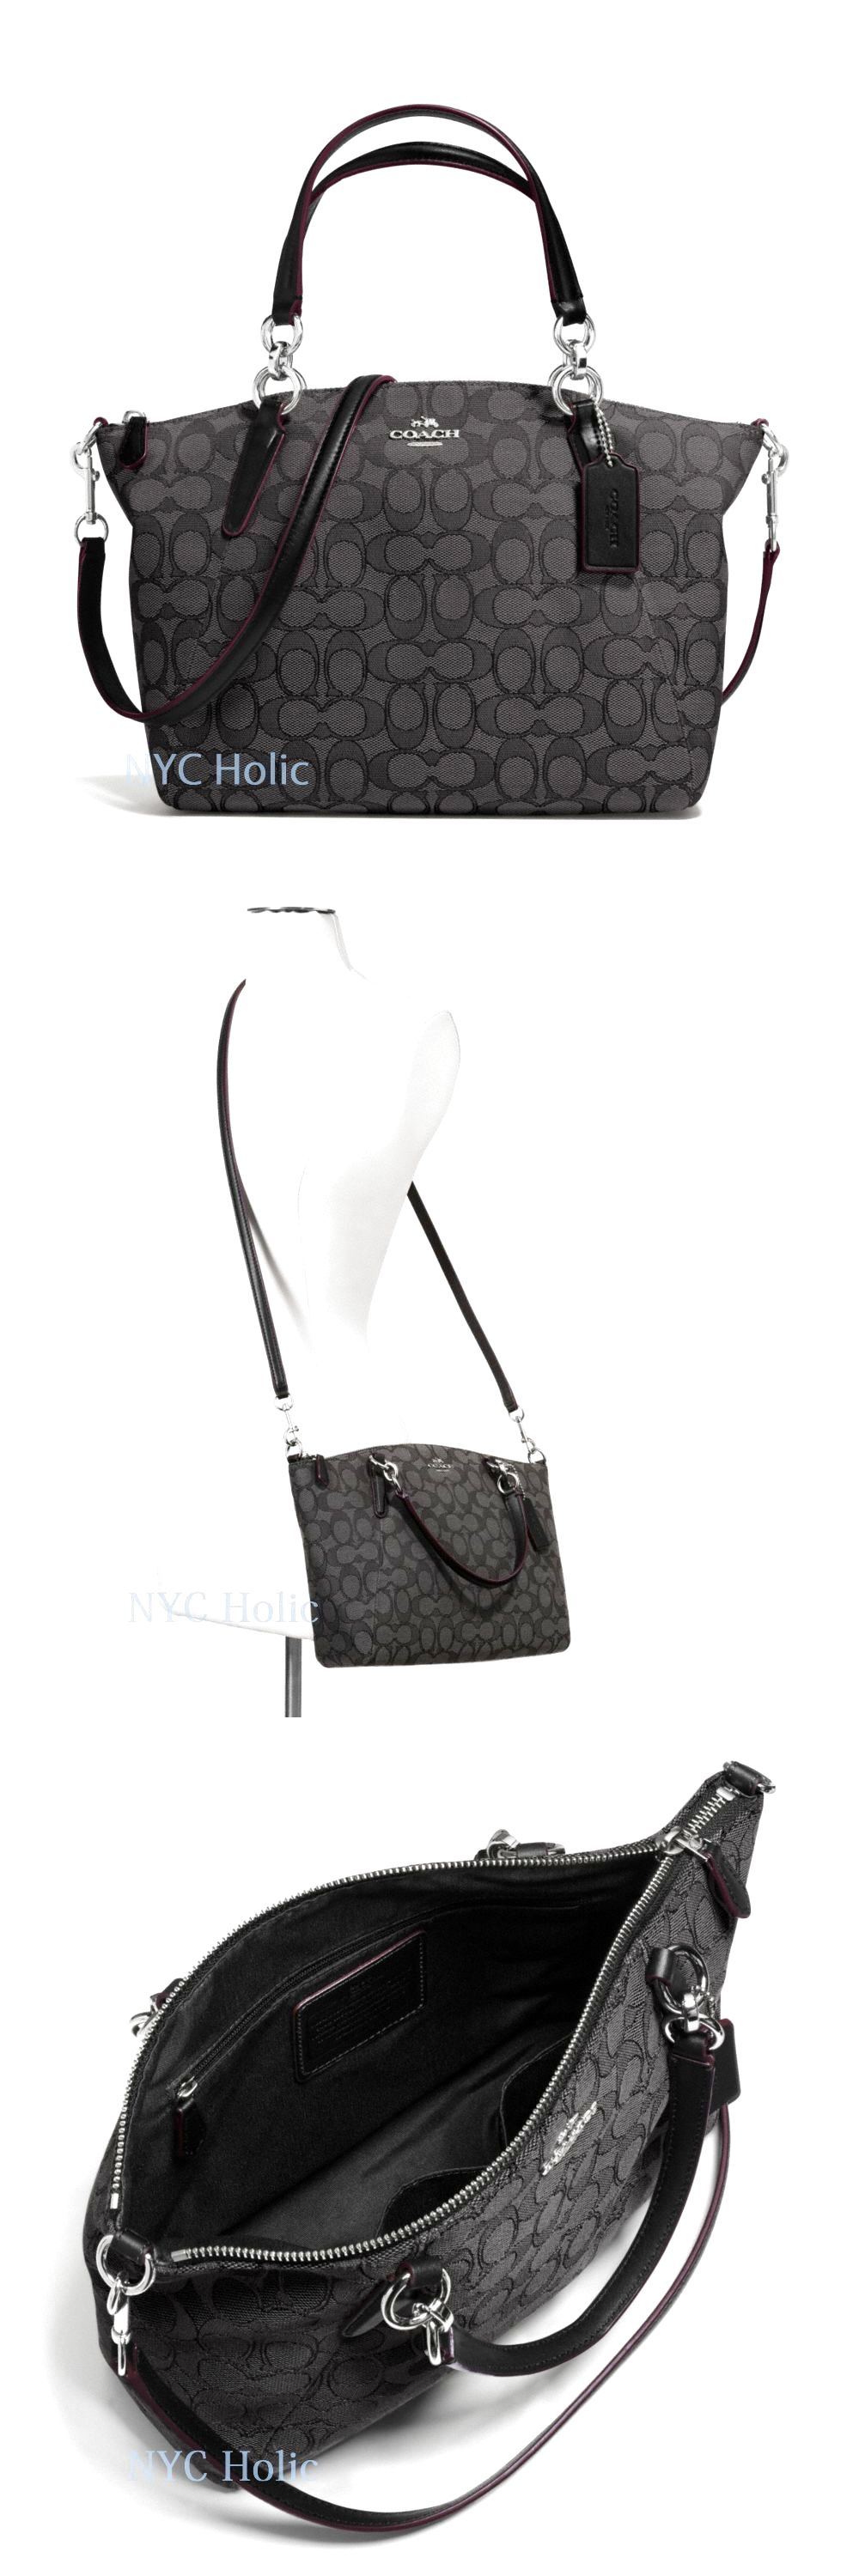 d43f008129 New Coach F36625 Small Kelsey Satchel In Signature Black Smoke NWT  119.95